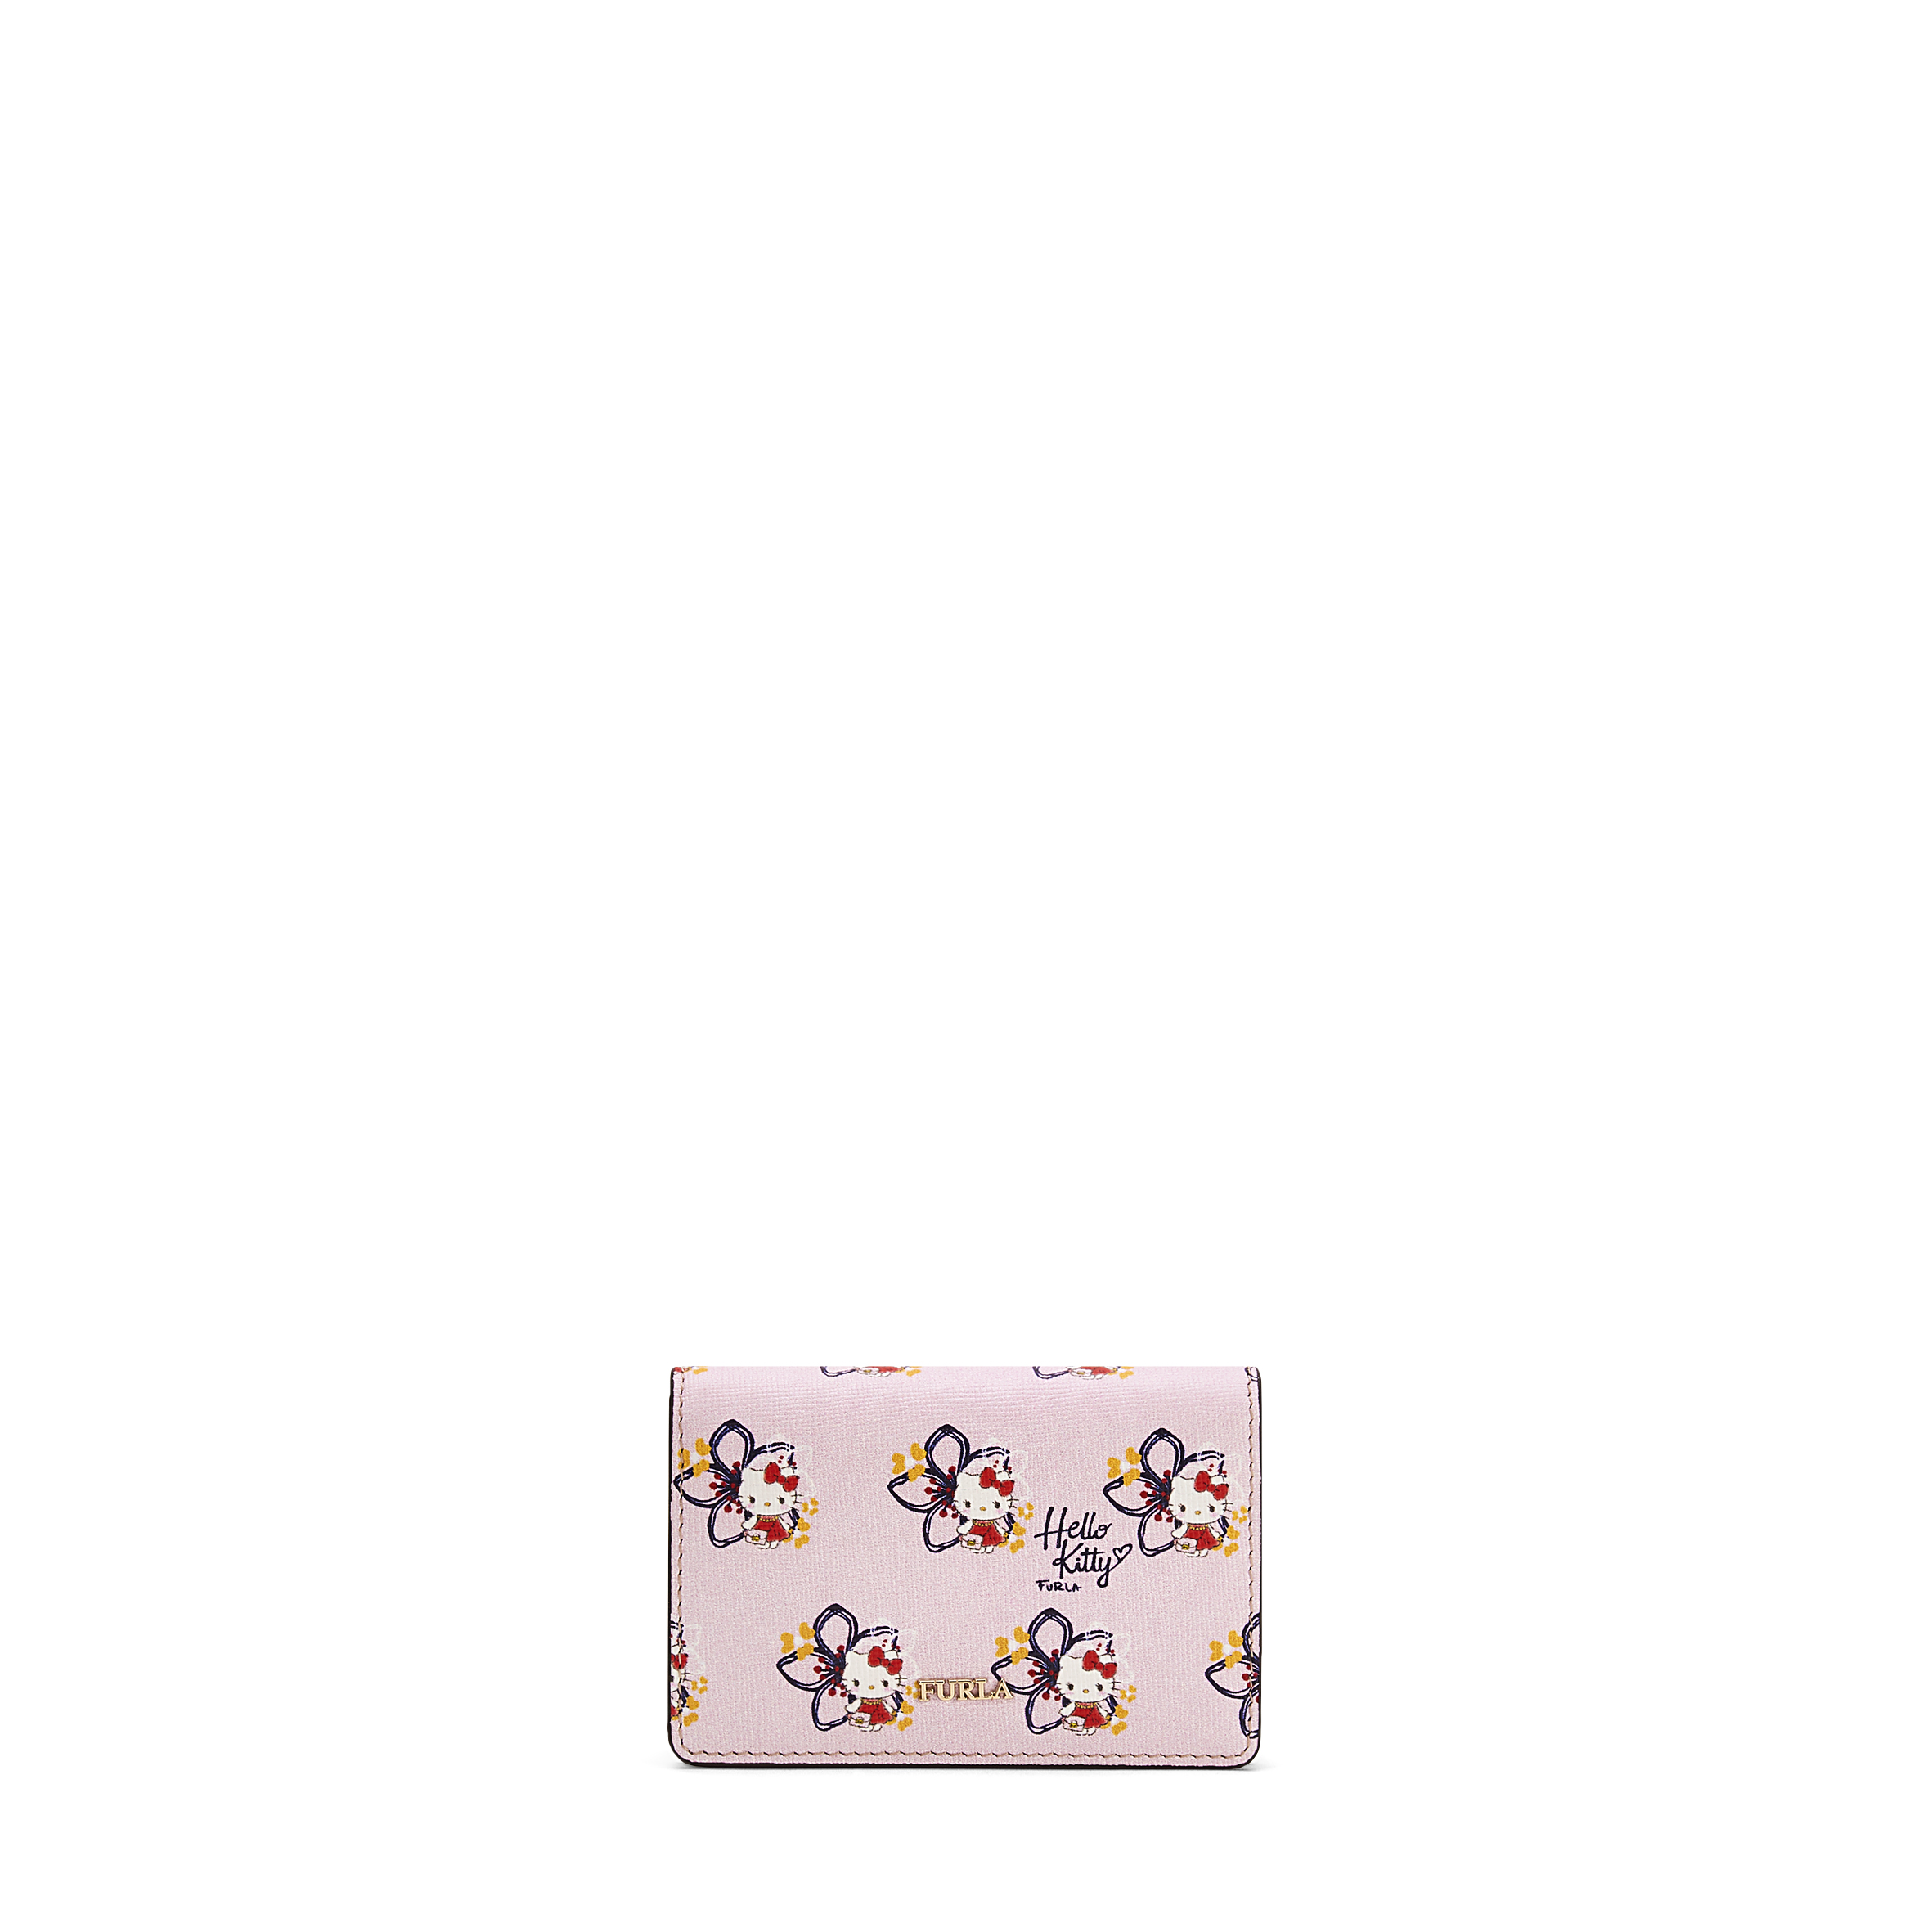 953022_PZ78 _KITTY S CREDIT CARD CASE_ MAGNOLIA_3P